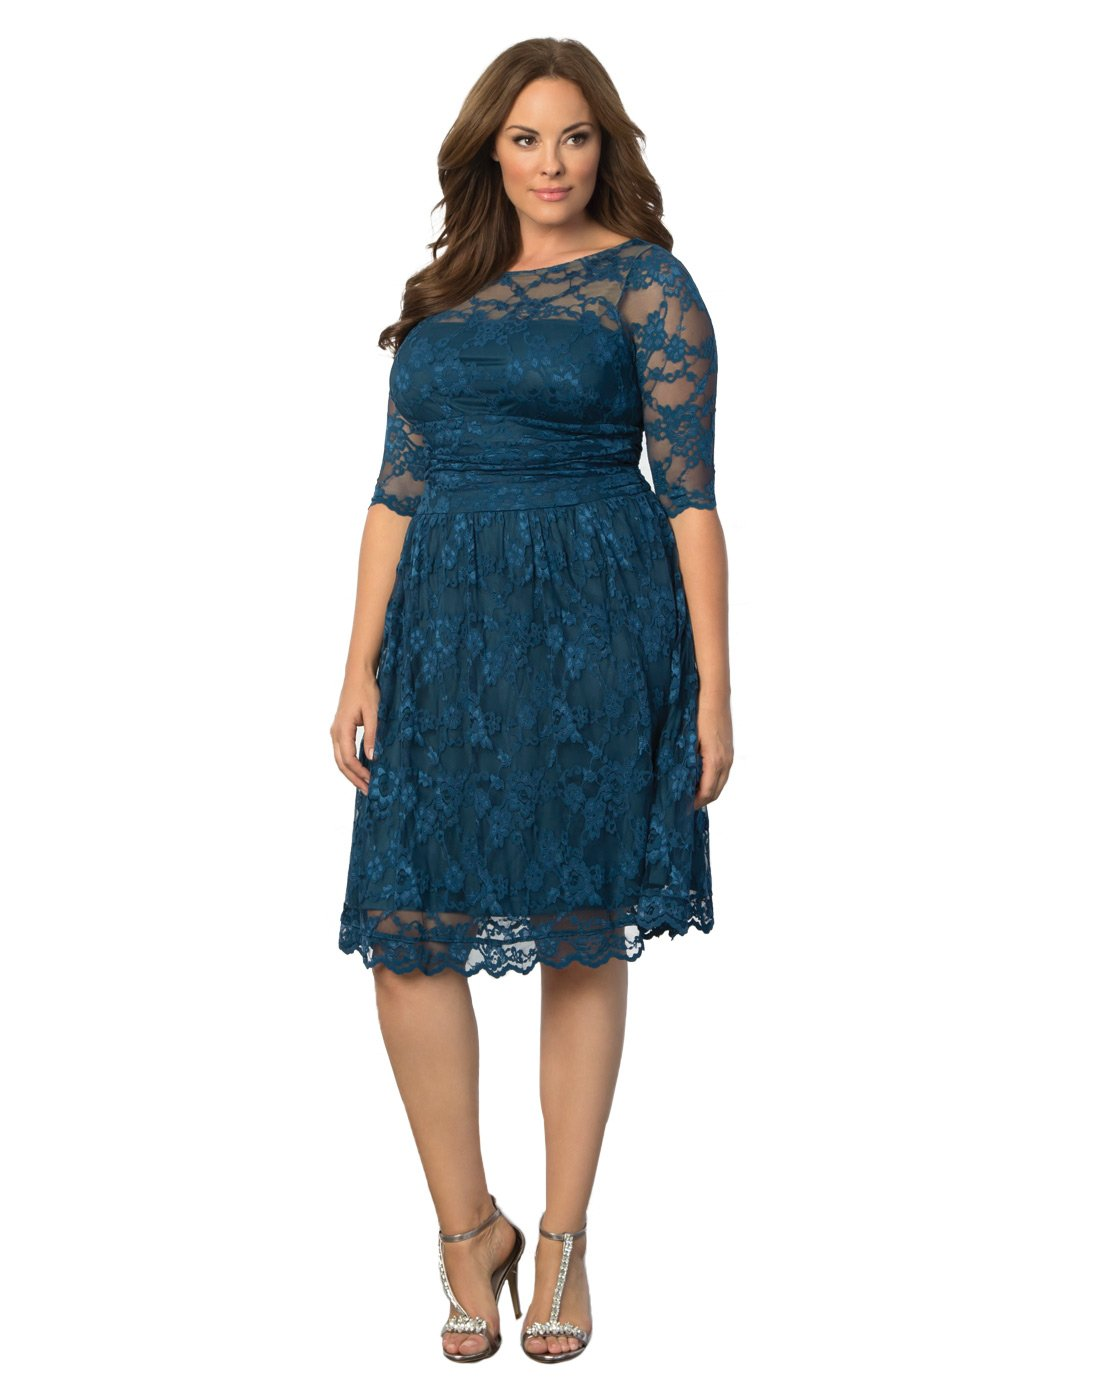 Kiyonna Women's Plus Size Luna Lace Cocktail Dress 0x Crazy About Blue by Kiyonna Clothing